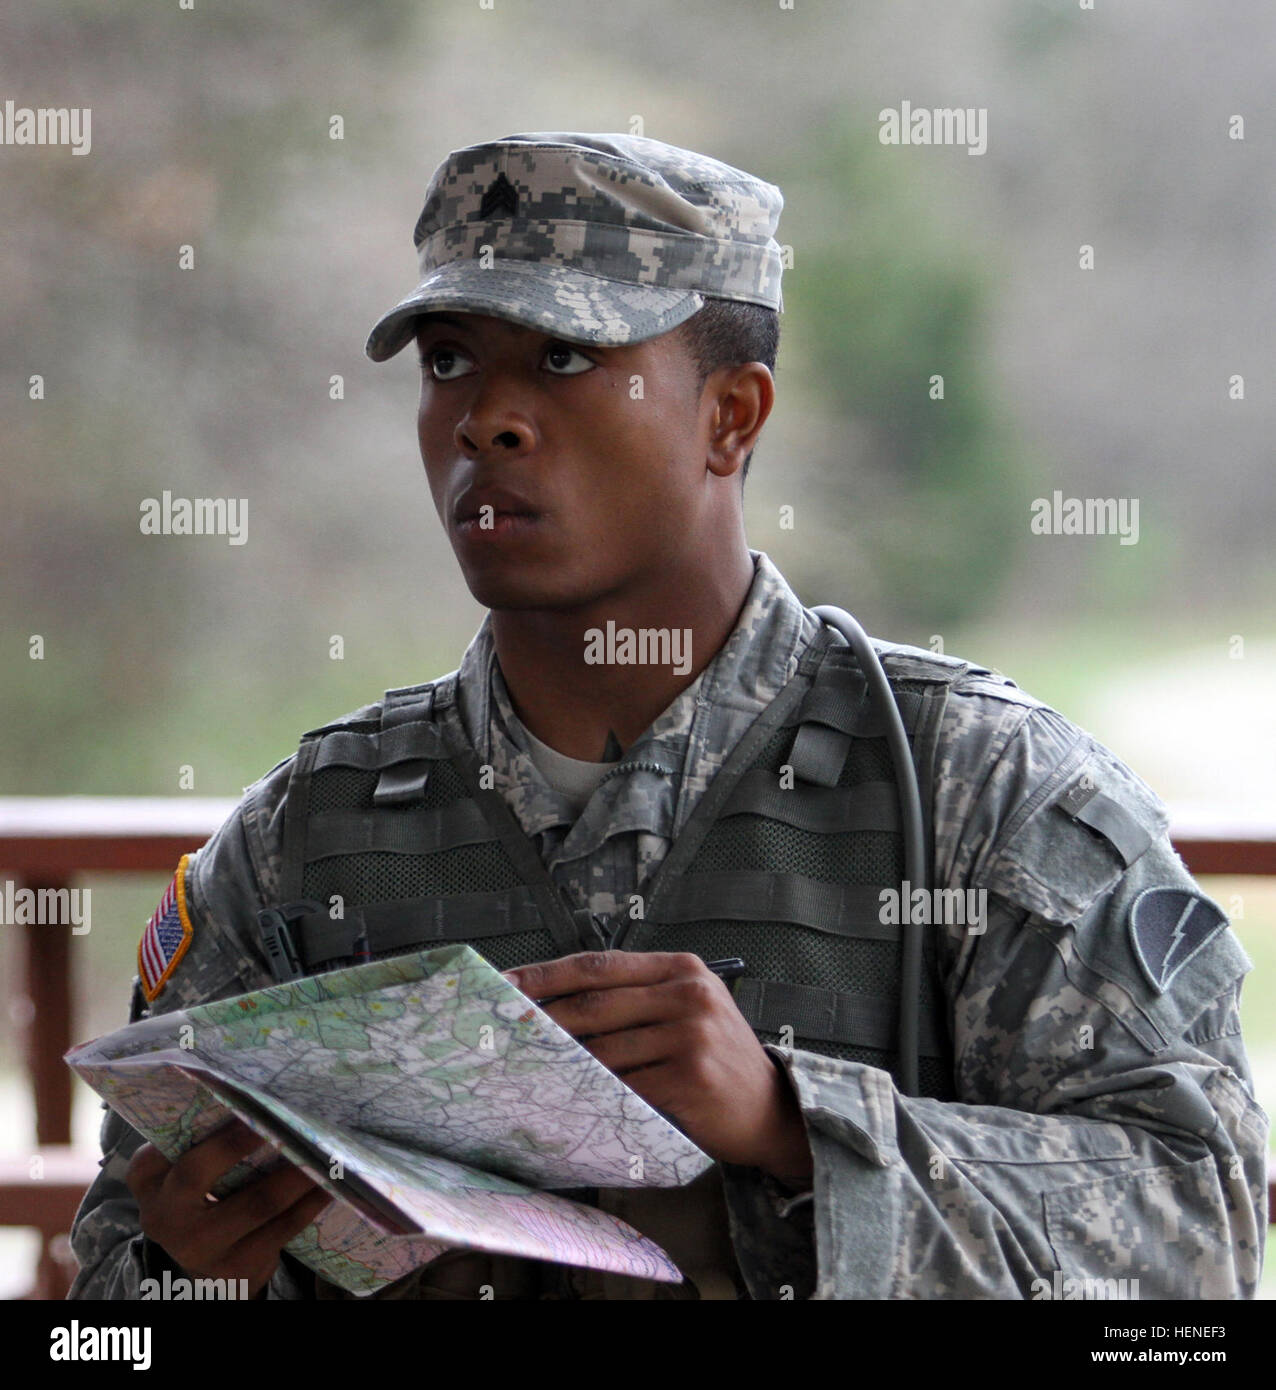 Sgt Darius Foster Of Rahway NJ 78th Training Division Joint Base McGuire Dix Lakehurst Listens To Last Minute Details Before The 84th